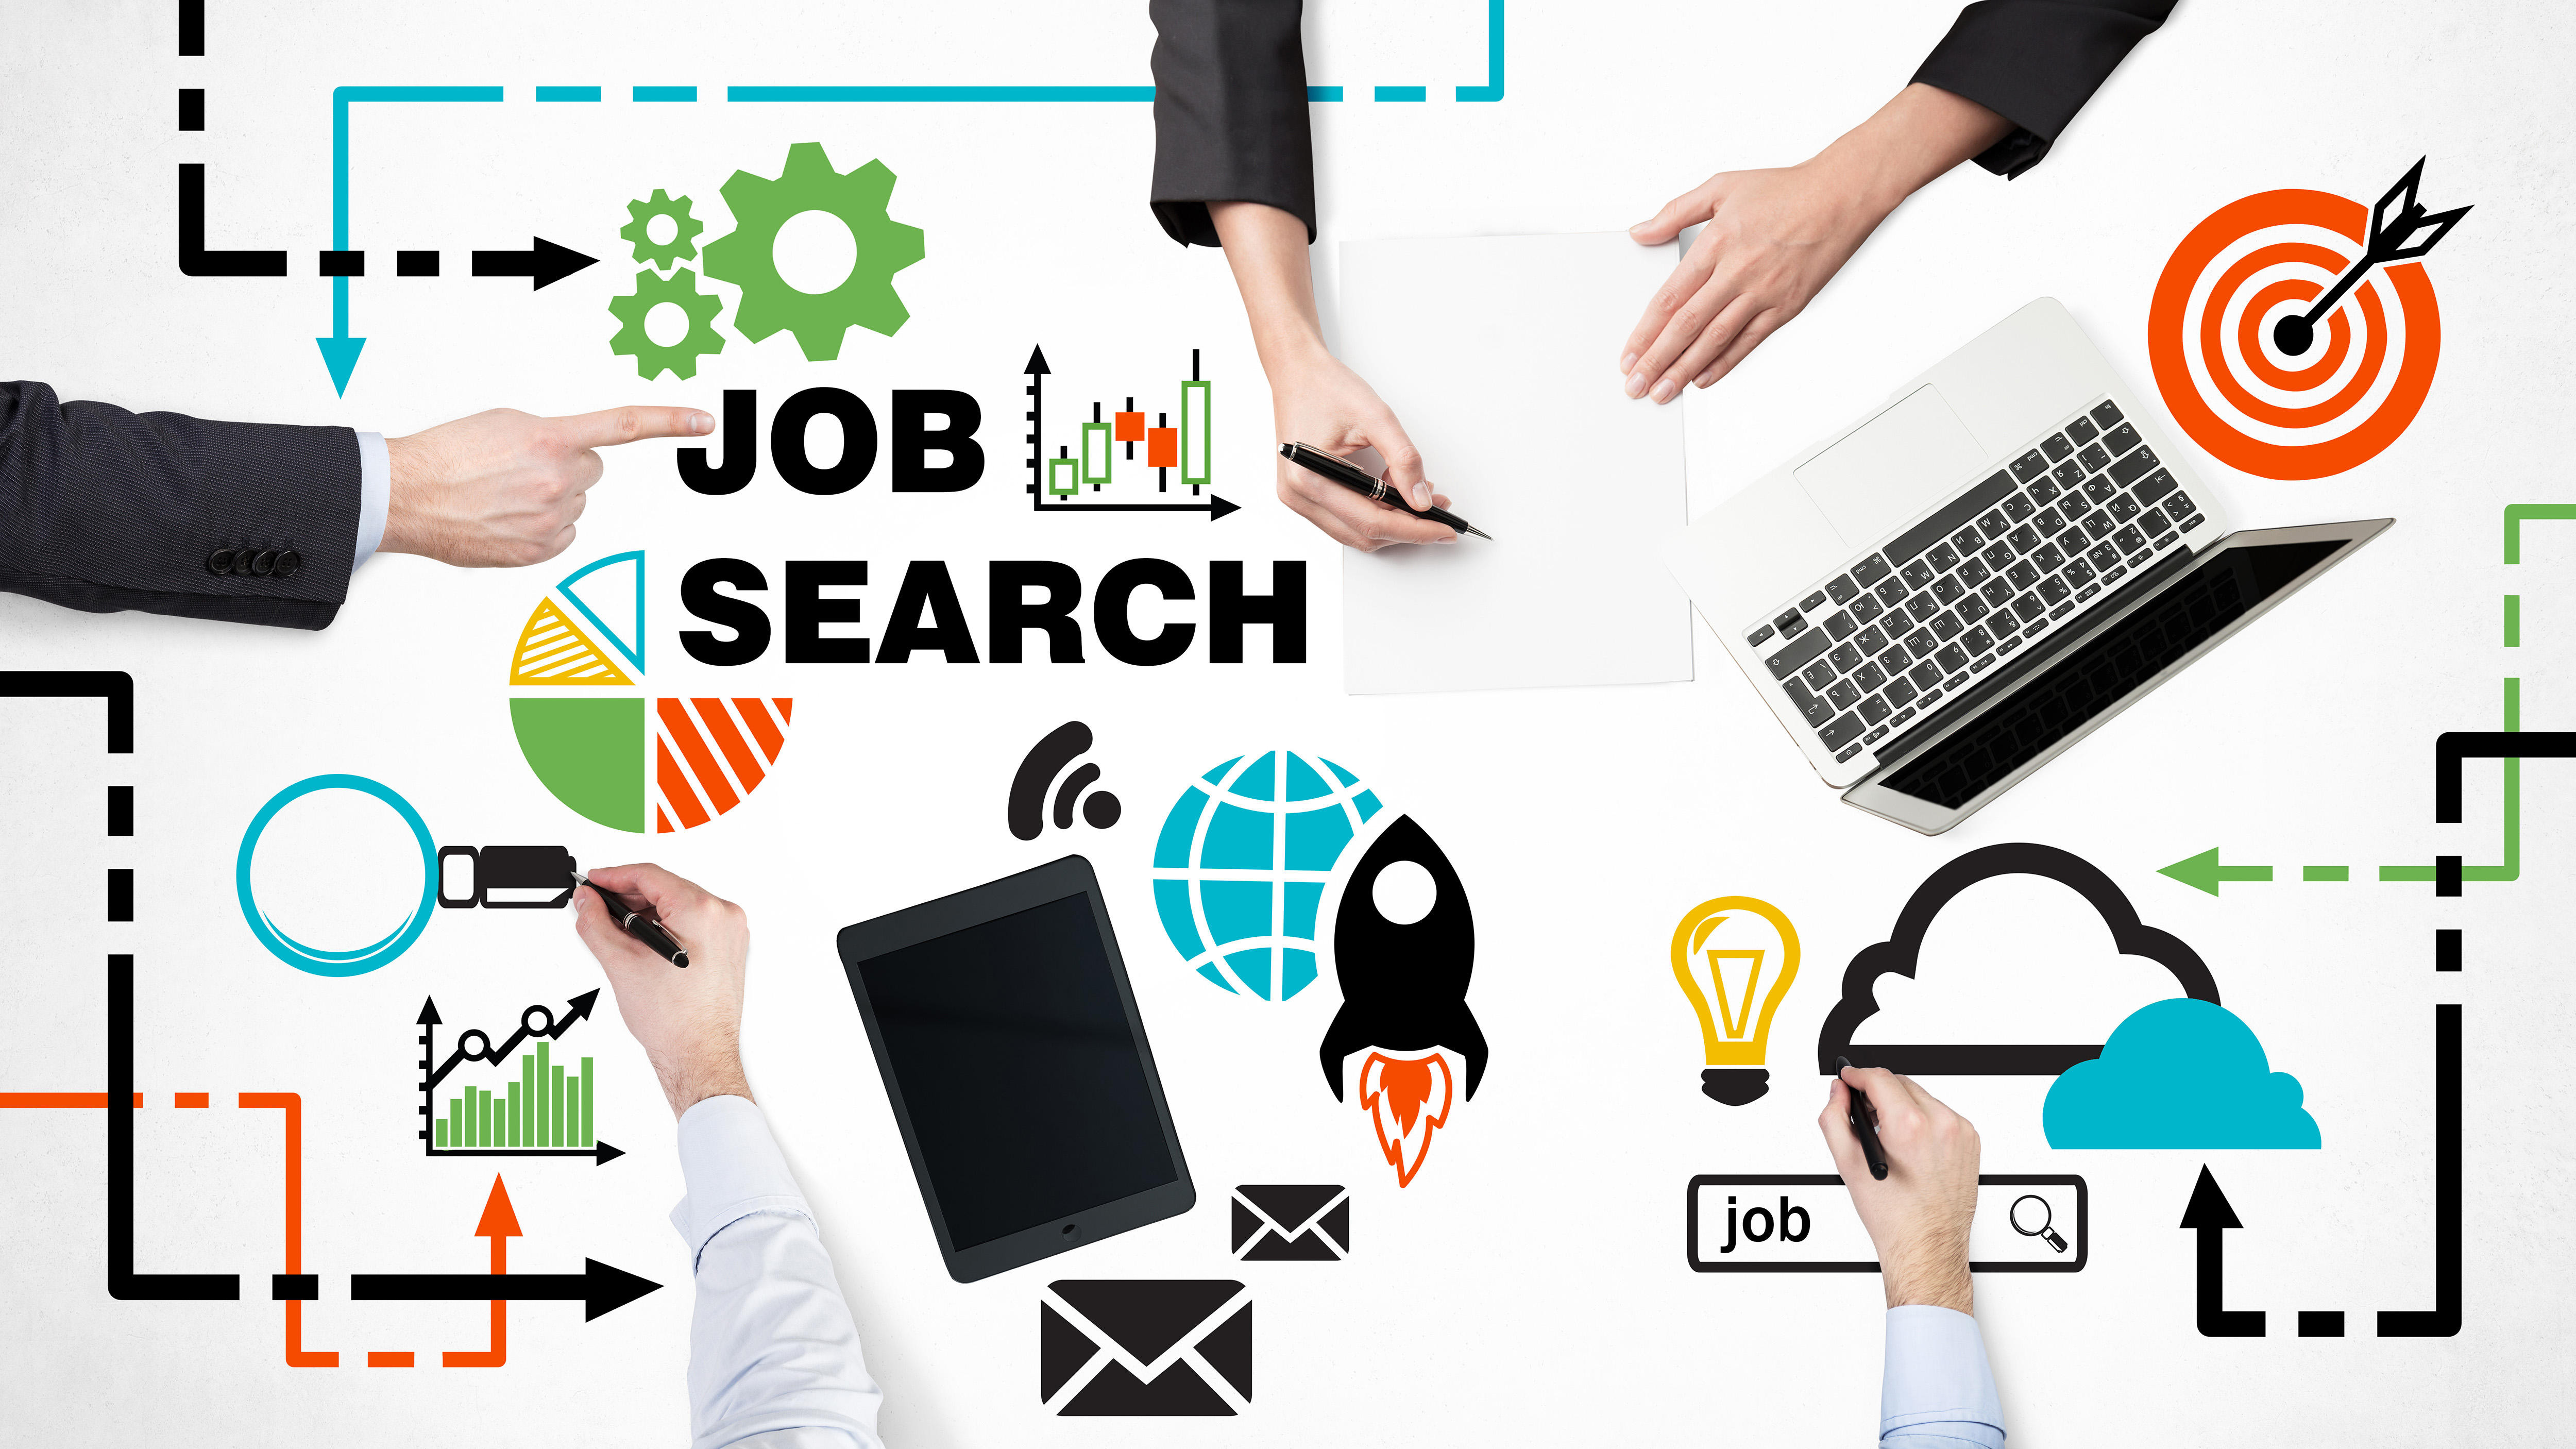 Job Search: Top 10 Things Ghanaians Do On the Internet